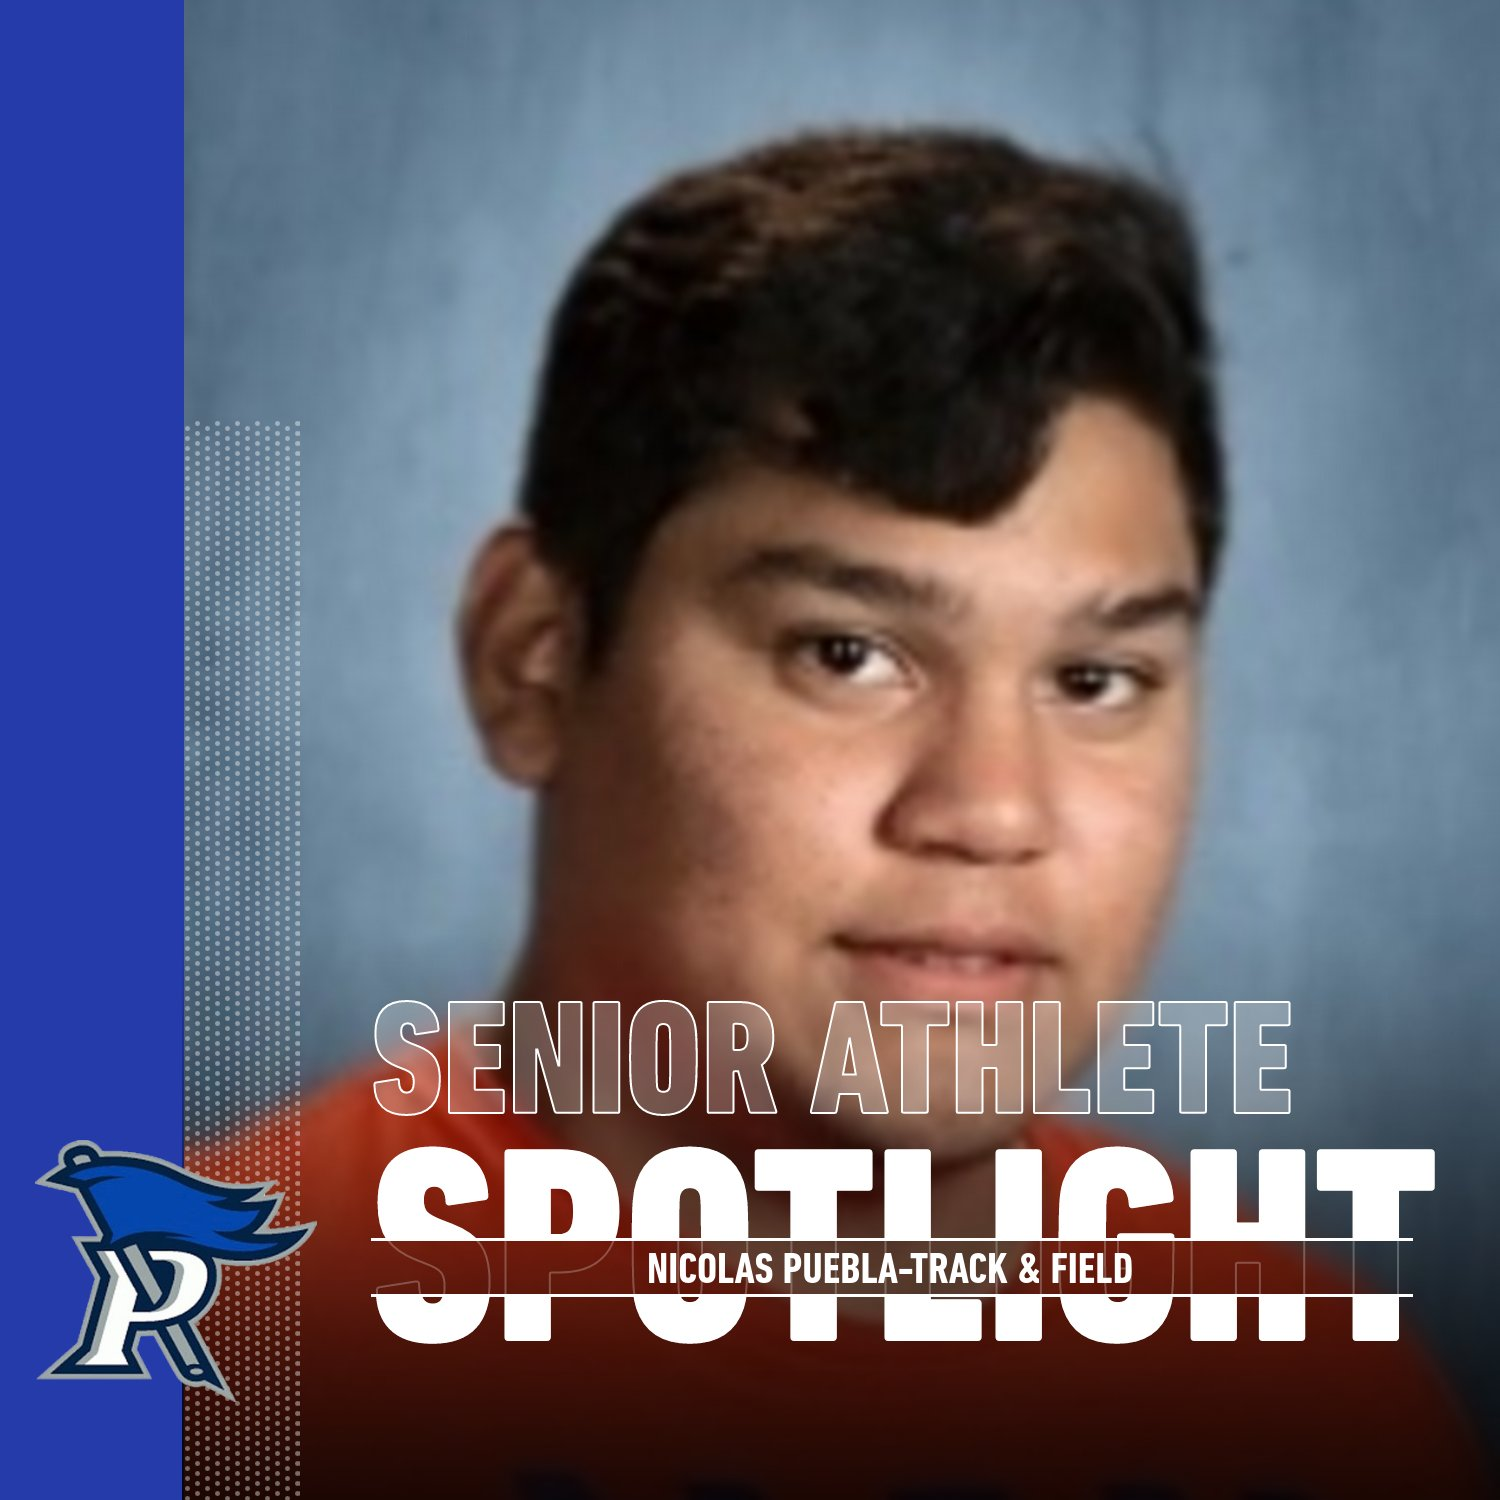 SENIOR ATHLETE SPOTLIGHT-NICOLAS PUEBLA-TRACK & FIELD